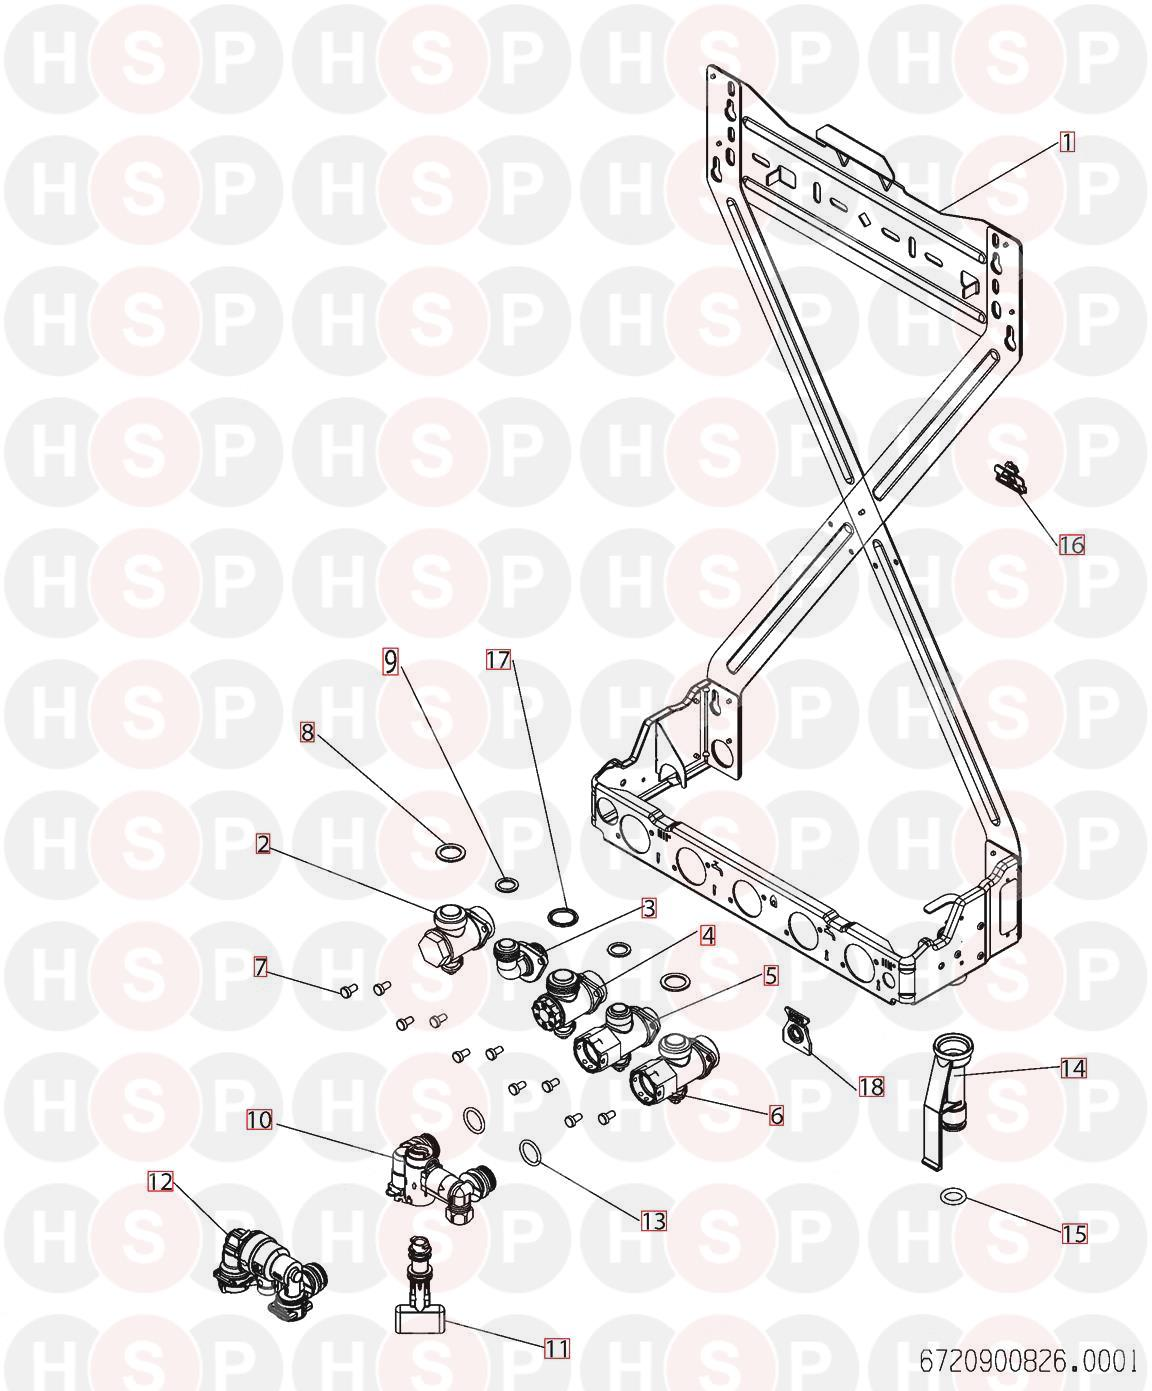 Worcester GREENSTAR 25 i ERP (MOUNTING PLATE) Diagram